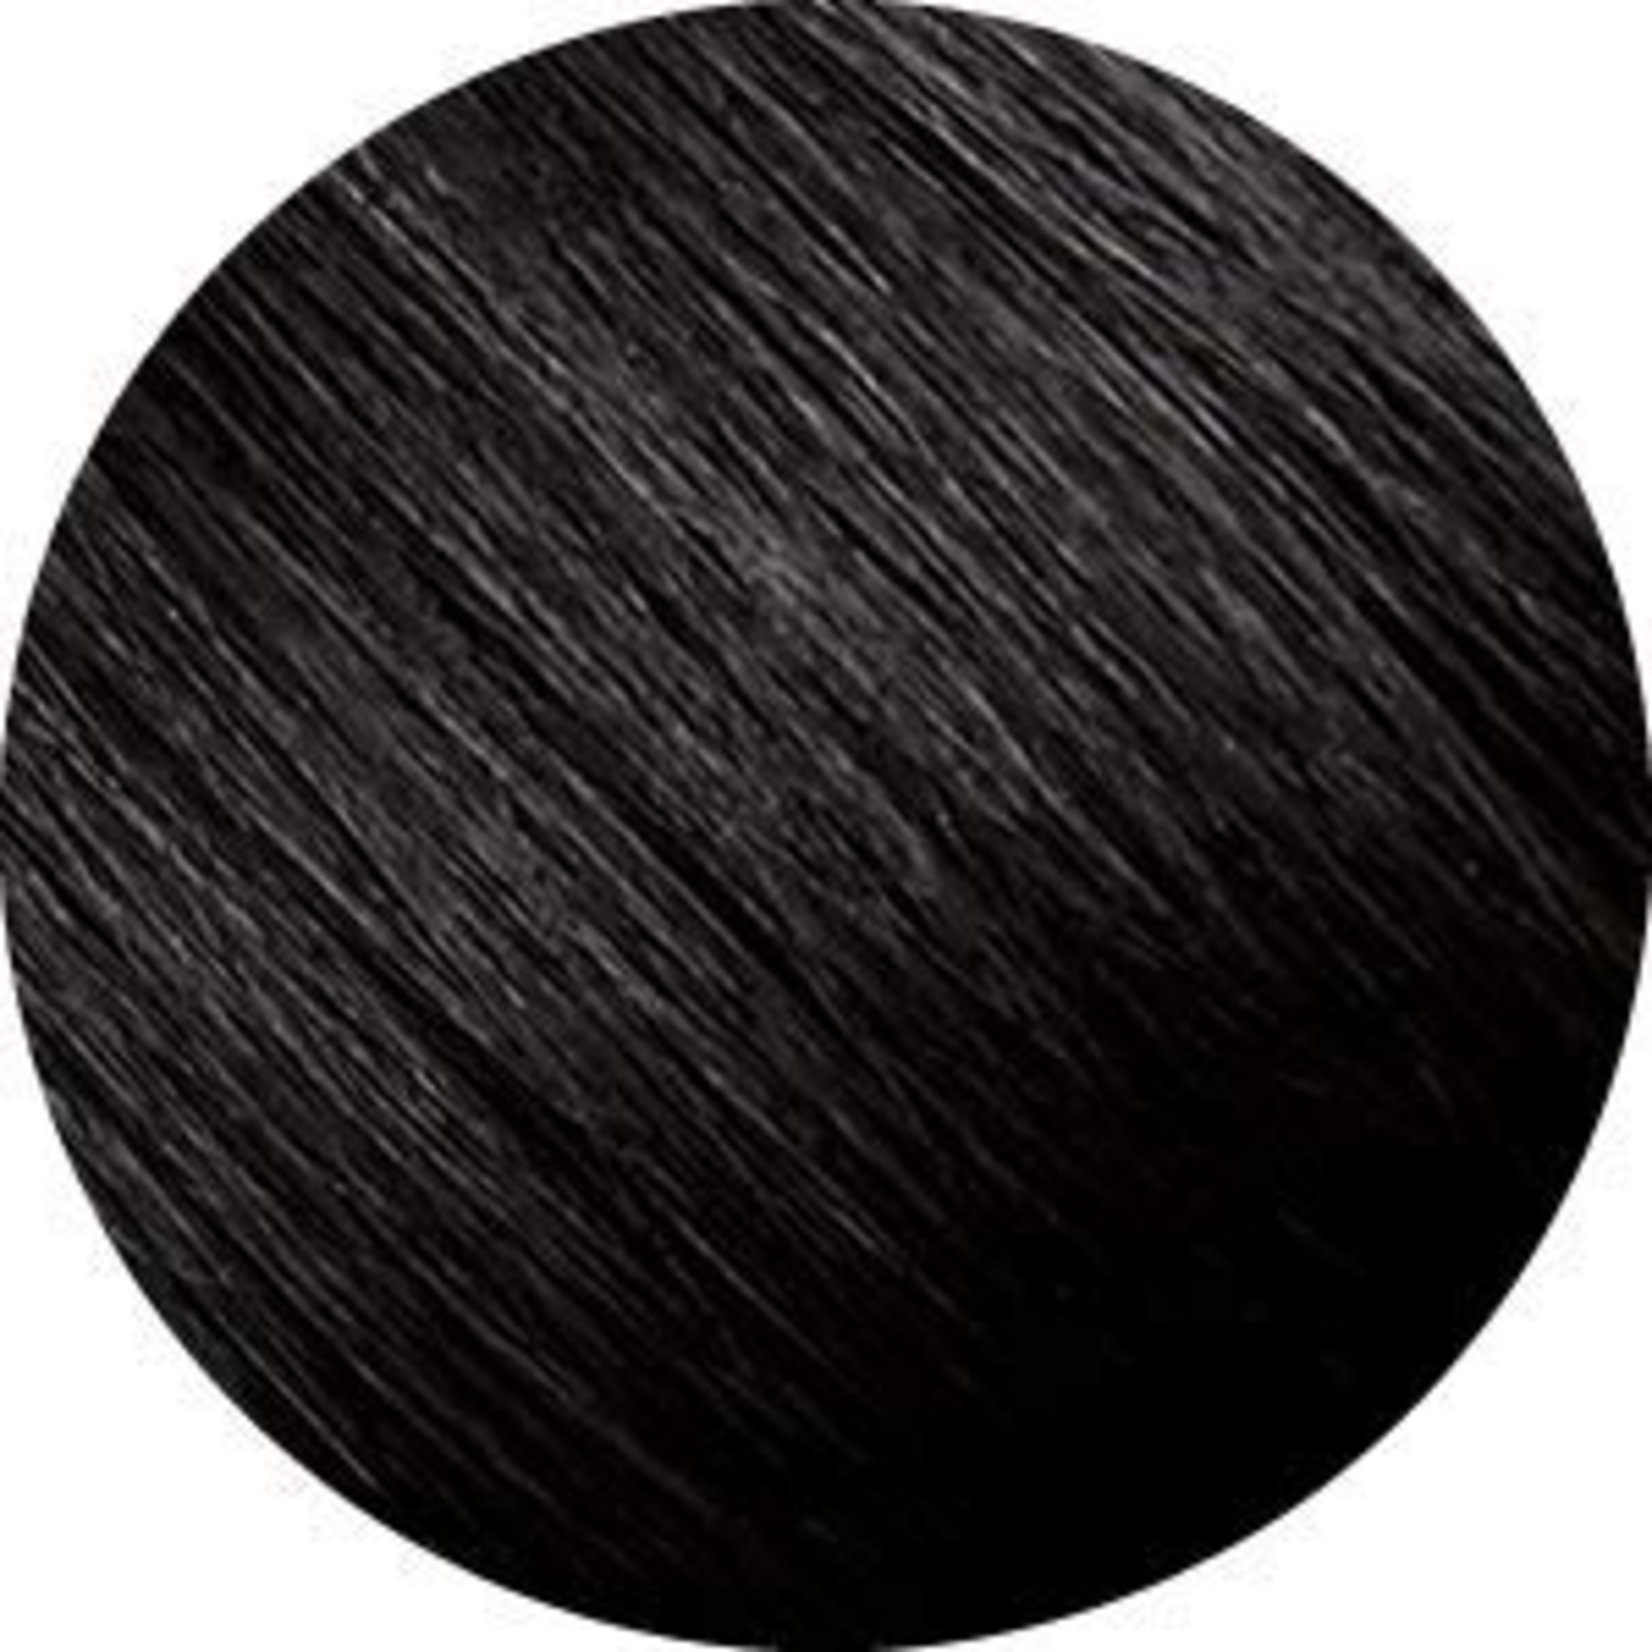 Tints Of Nature Tints Of Nature permanent hair color 1N NAT BLACK